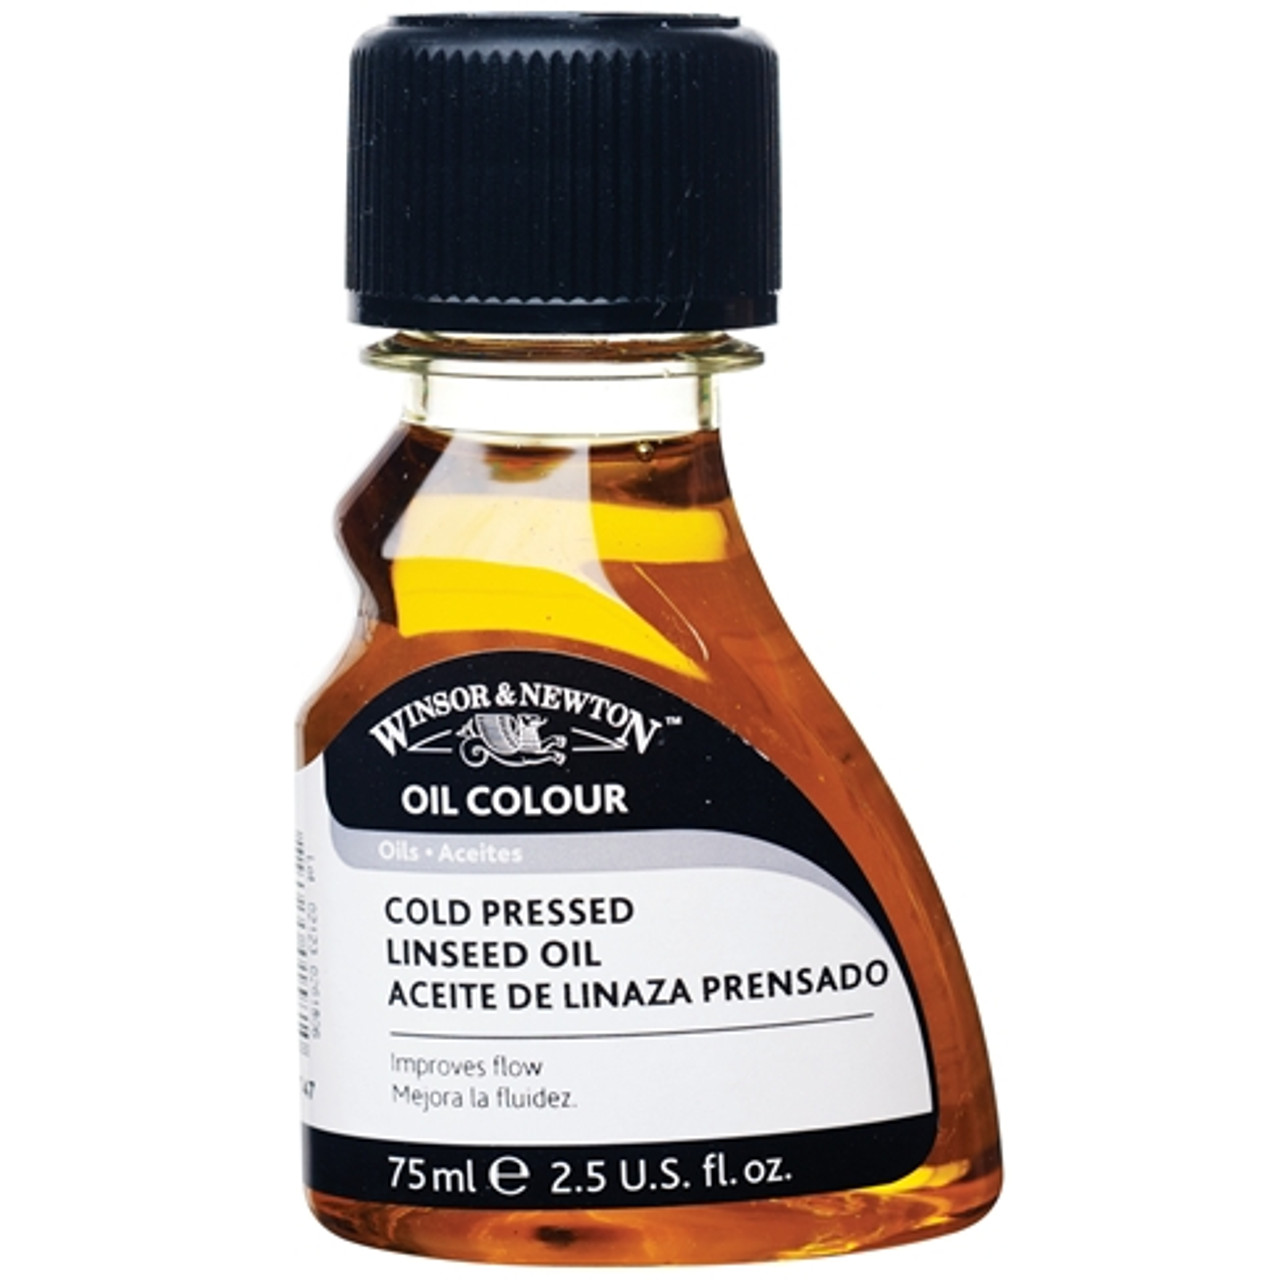 Cold-Pressed Linseed Oil, 75ml